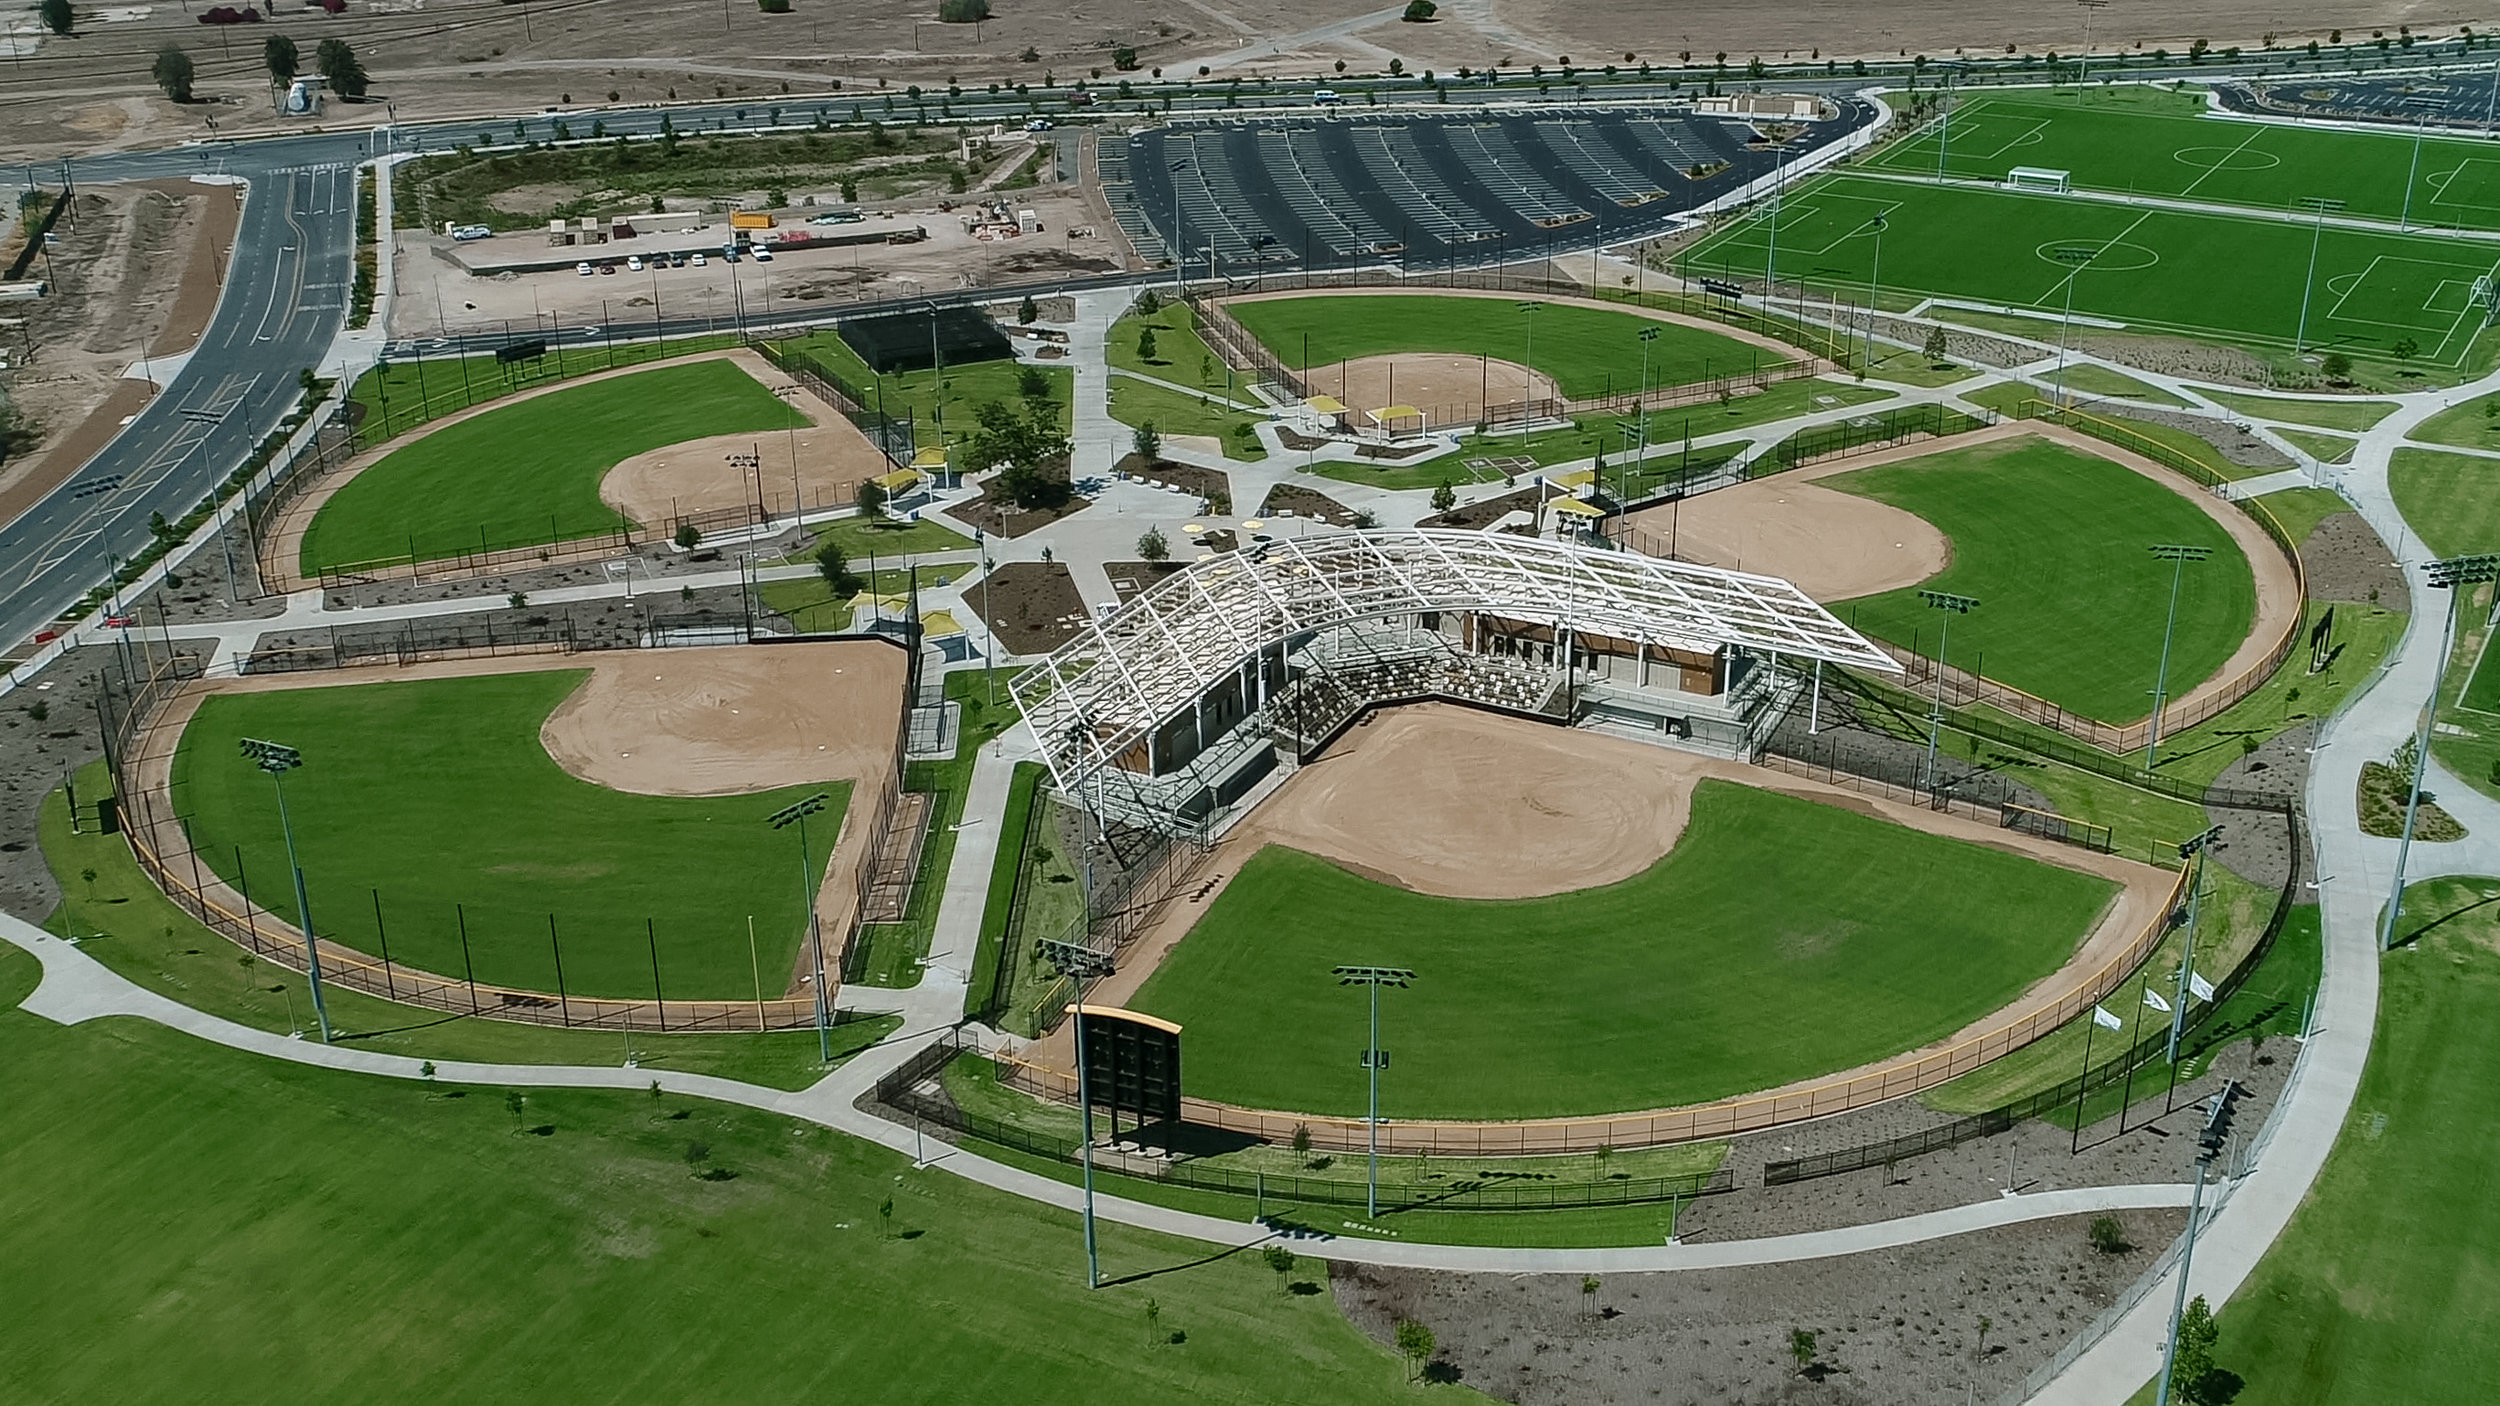 Full OCGP Sports Park Jeffrey L. Bruce 4K_21.jpg